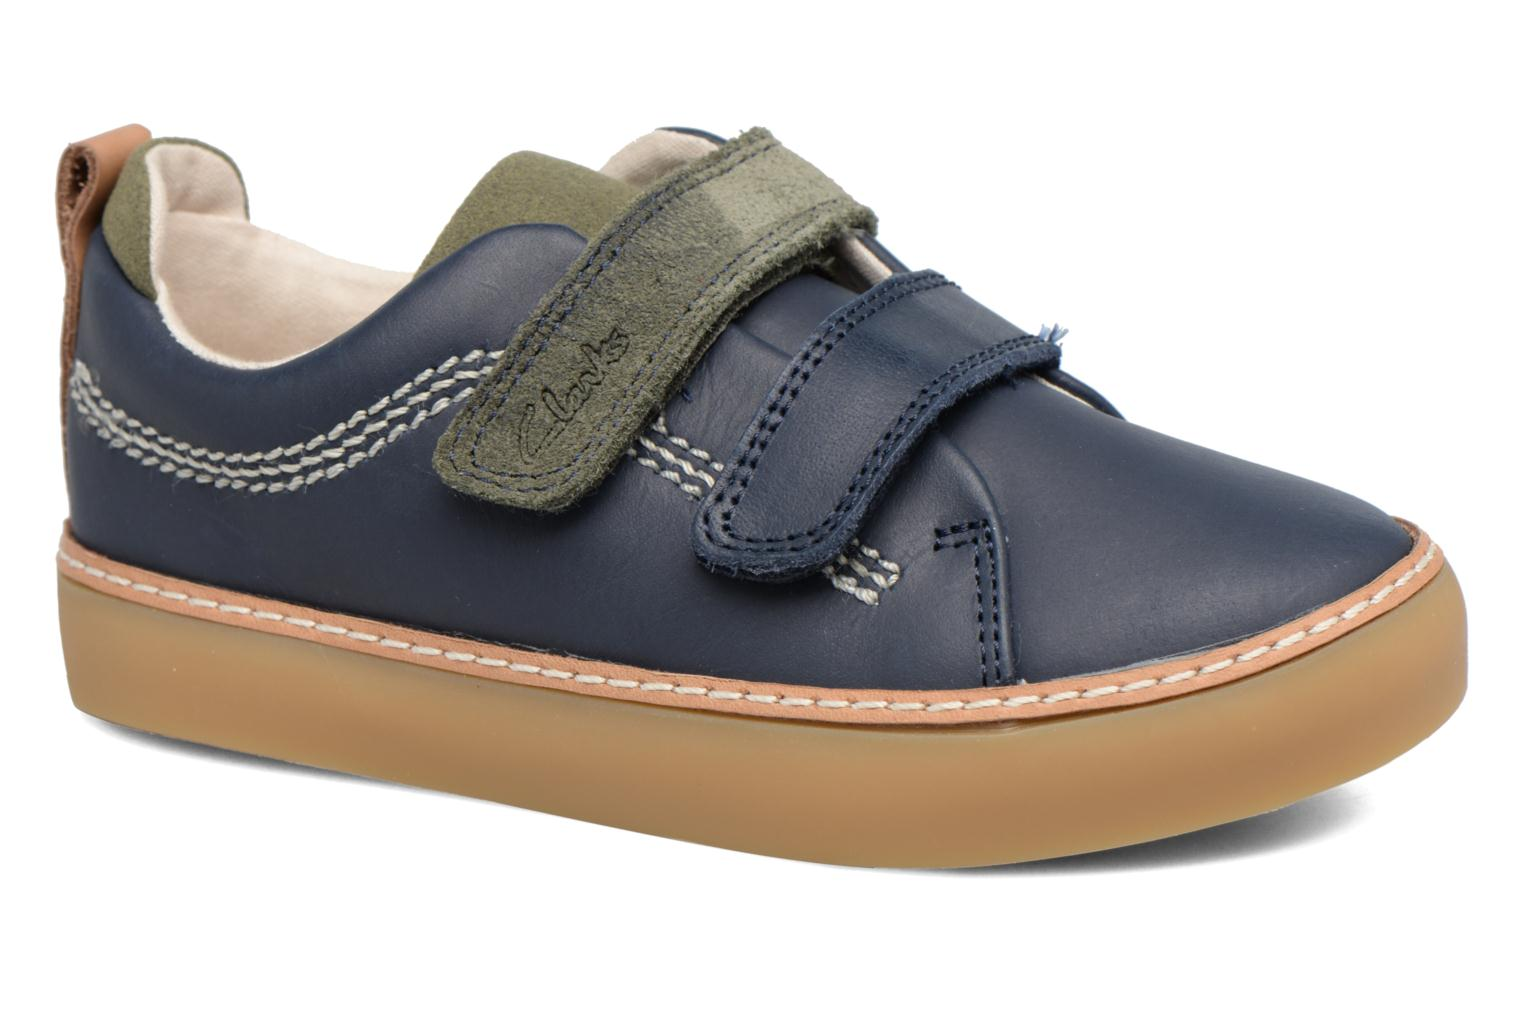 Brill Toy Inf Navy leather